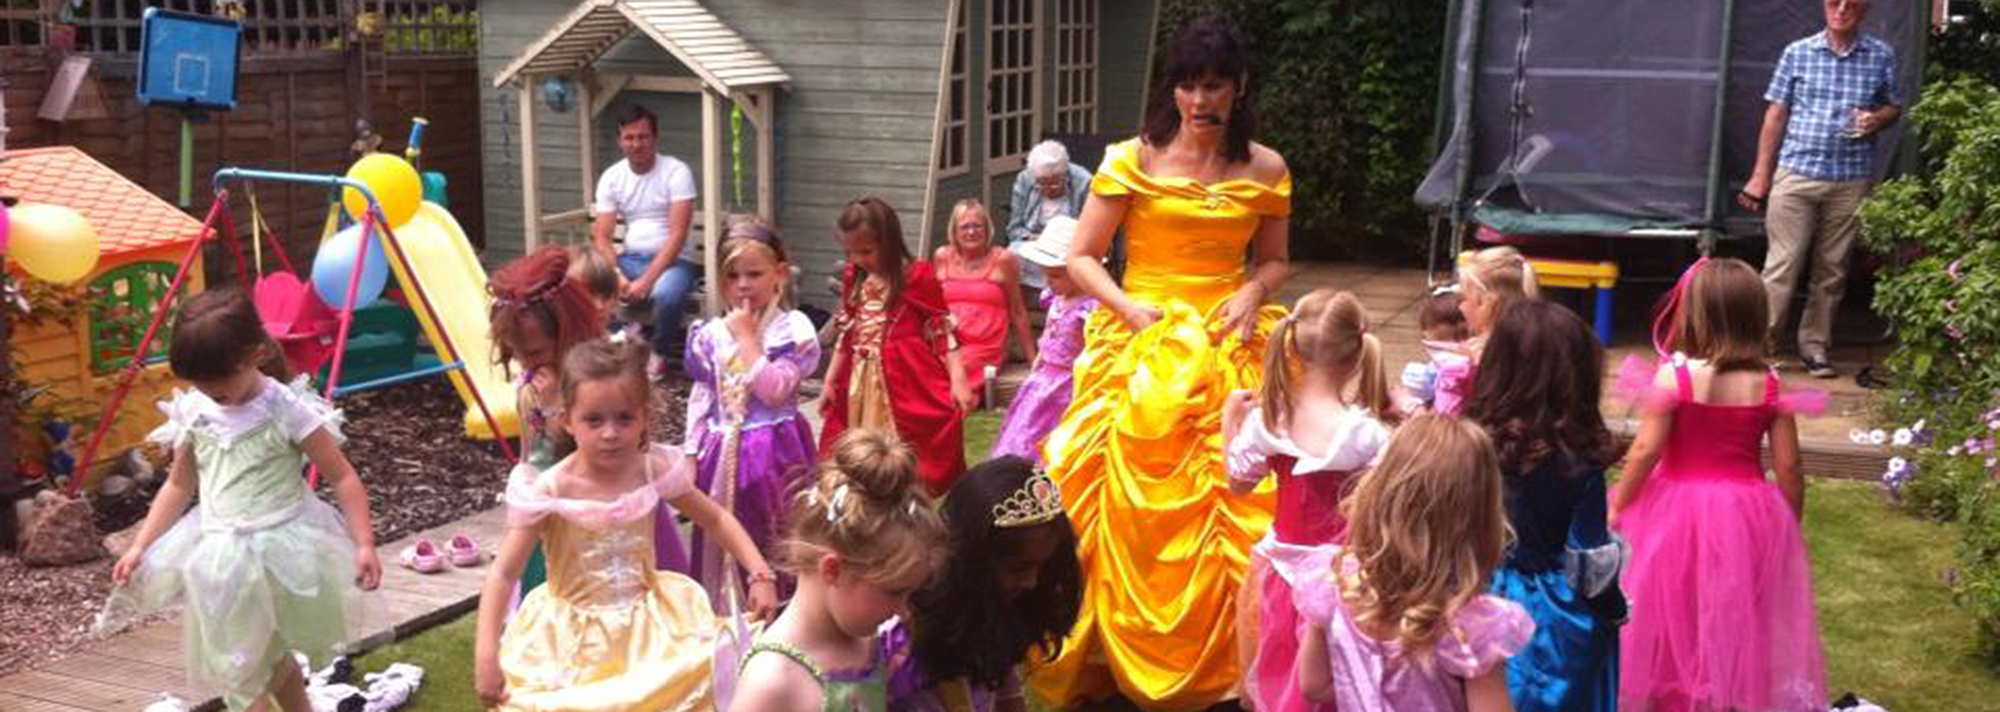 Childrens Parties Birthday Party Entertainer Aylesbury - Children's birthday parties high wycombe